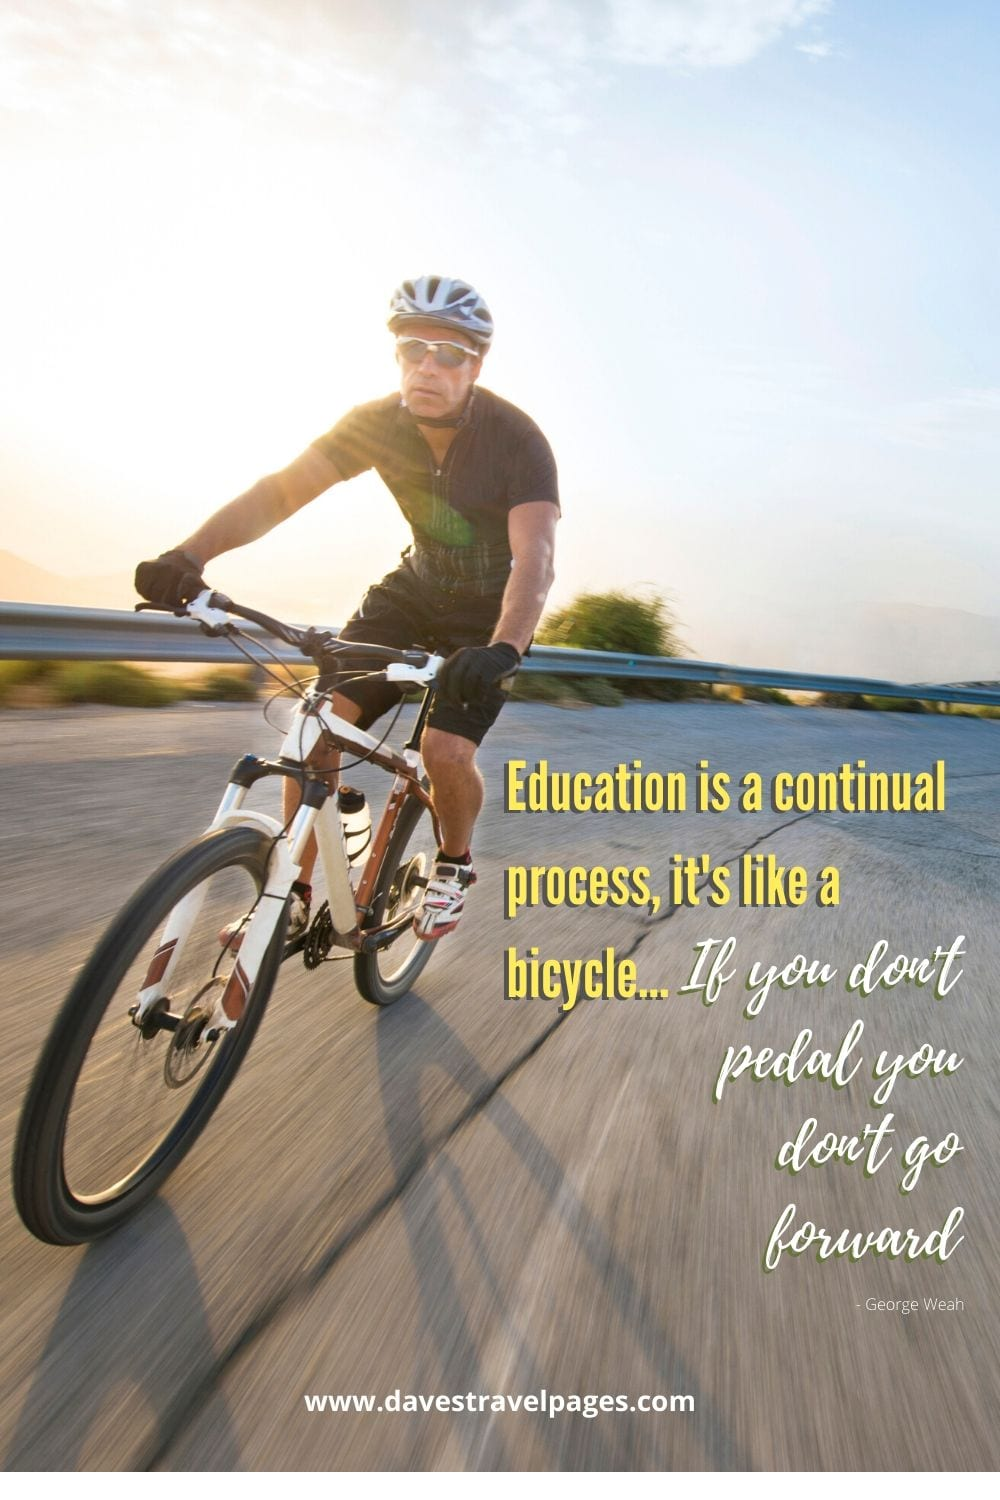 Bike ride quotes - Education is a continual process, it's like a bicycle... If you don't pedal you don't go forward. George Weah